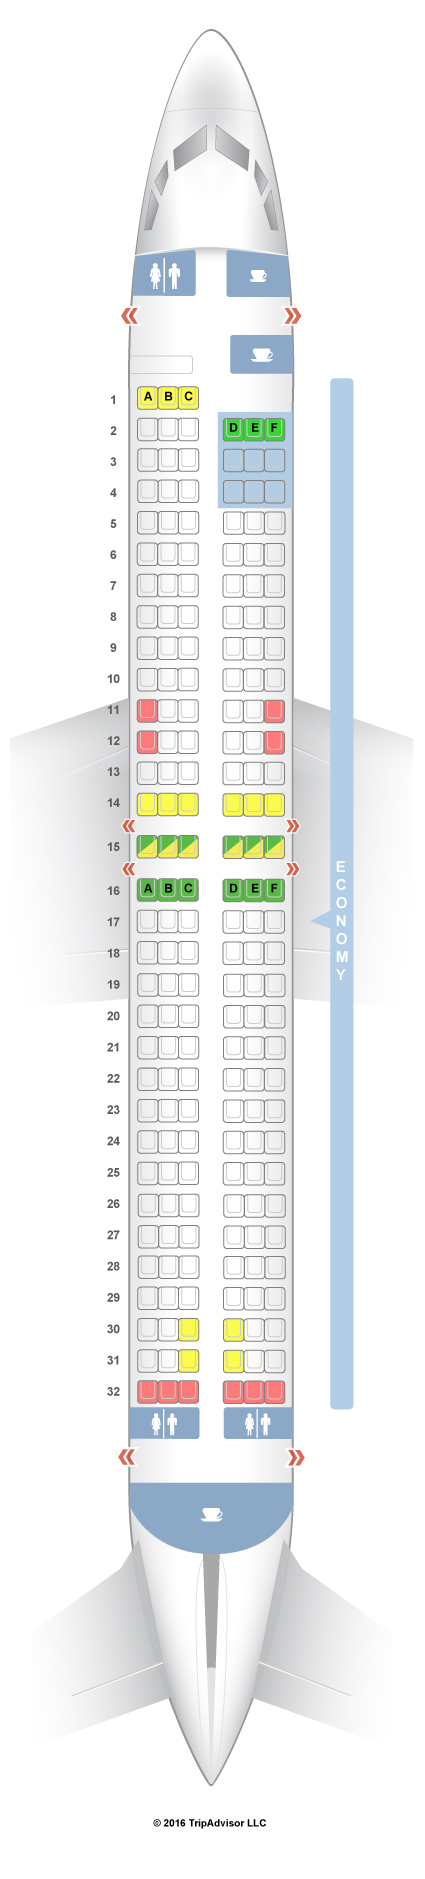 SeatGuru Seat Map TUIfly - SeatGuru